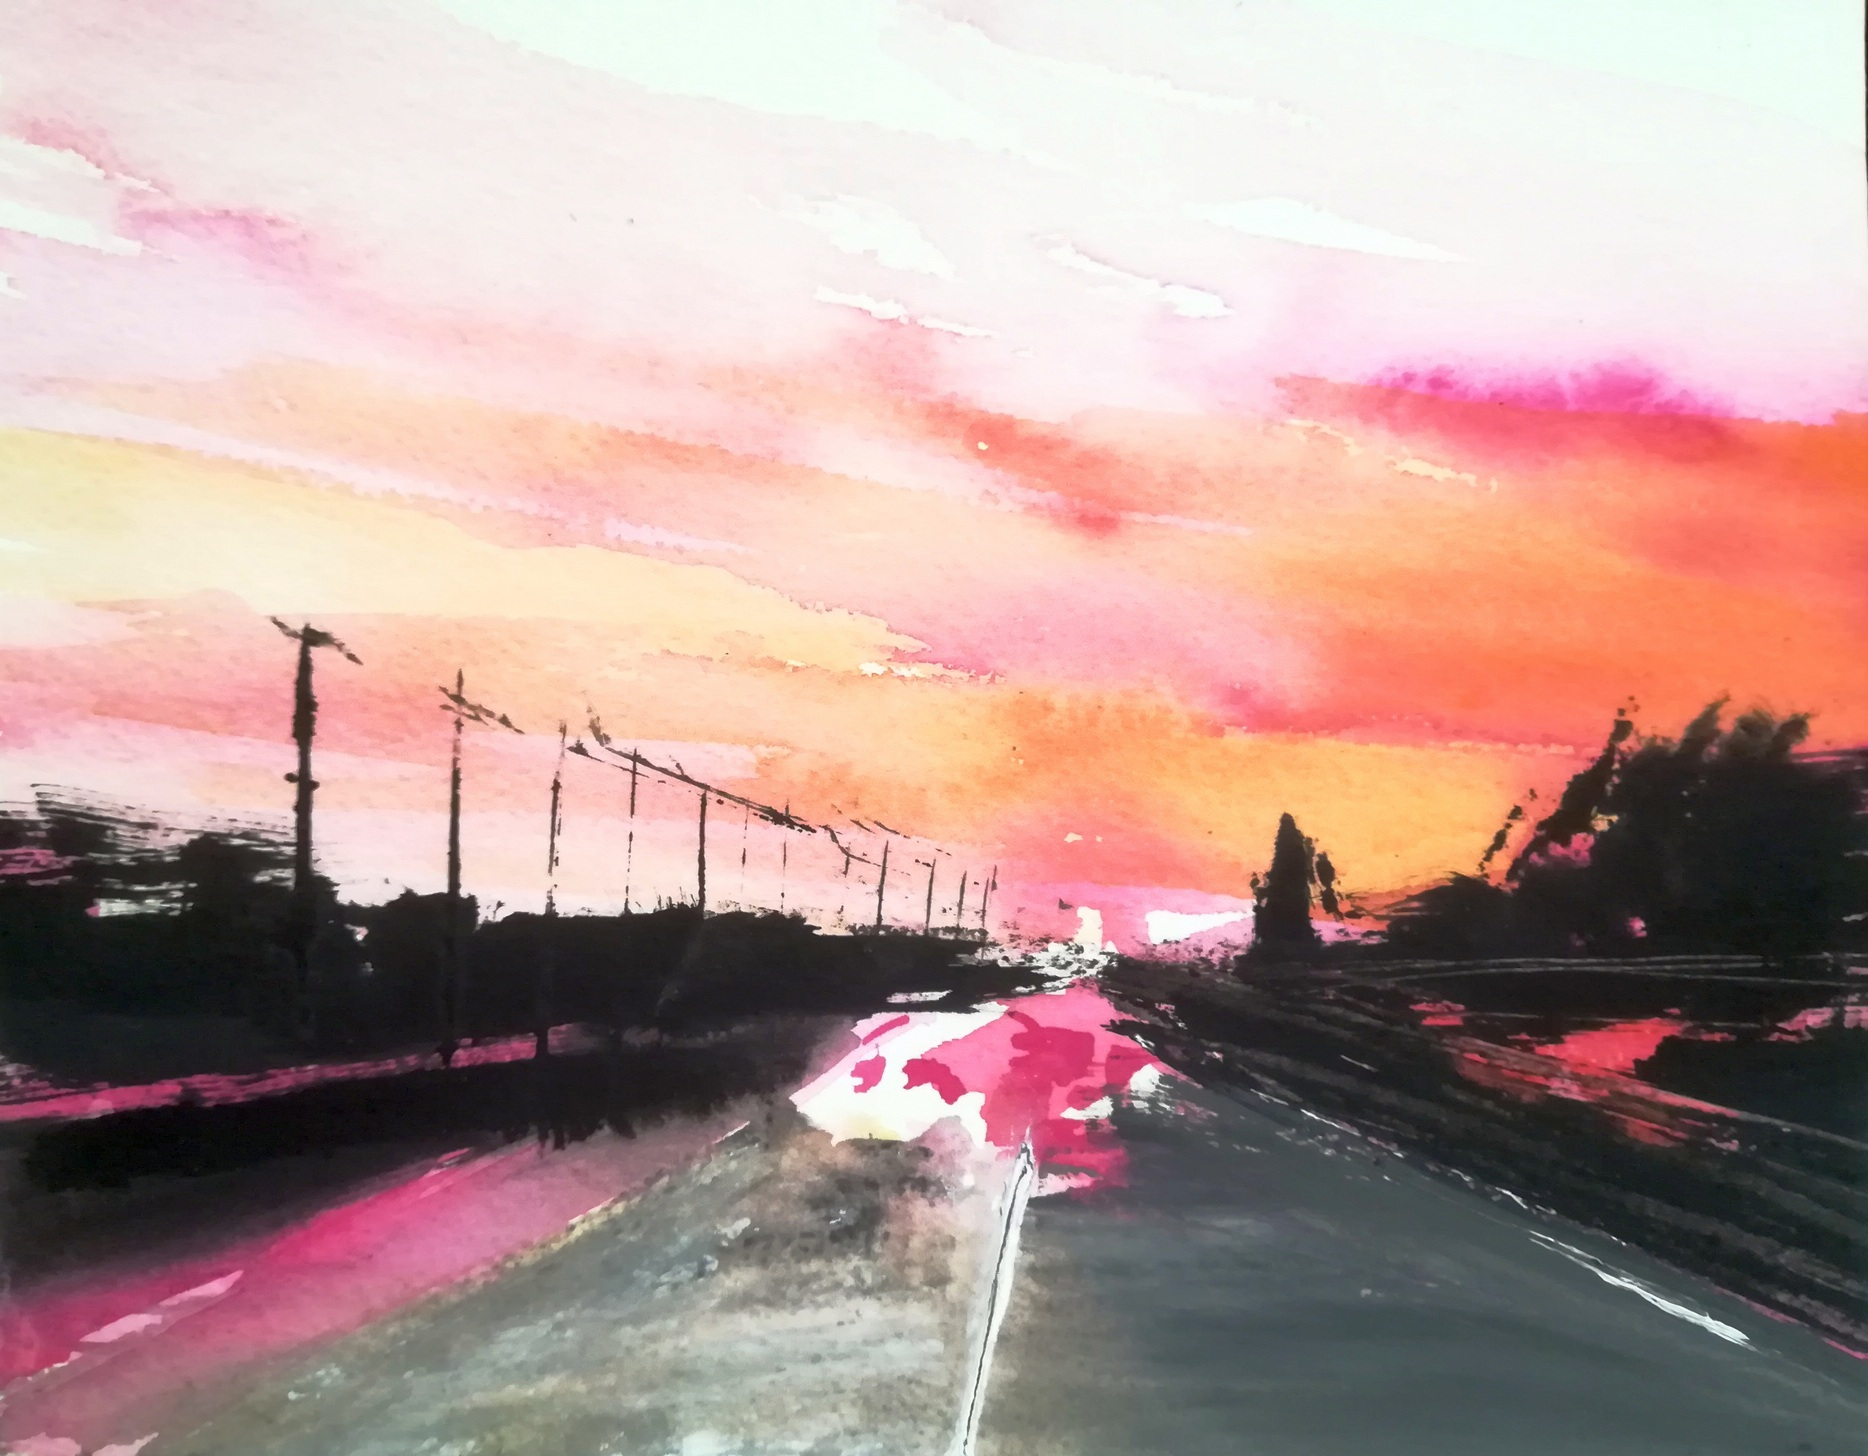 2017-Tramonto-rosa18x23cm-mixed media on paper